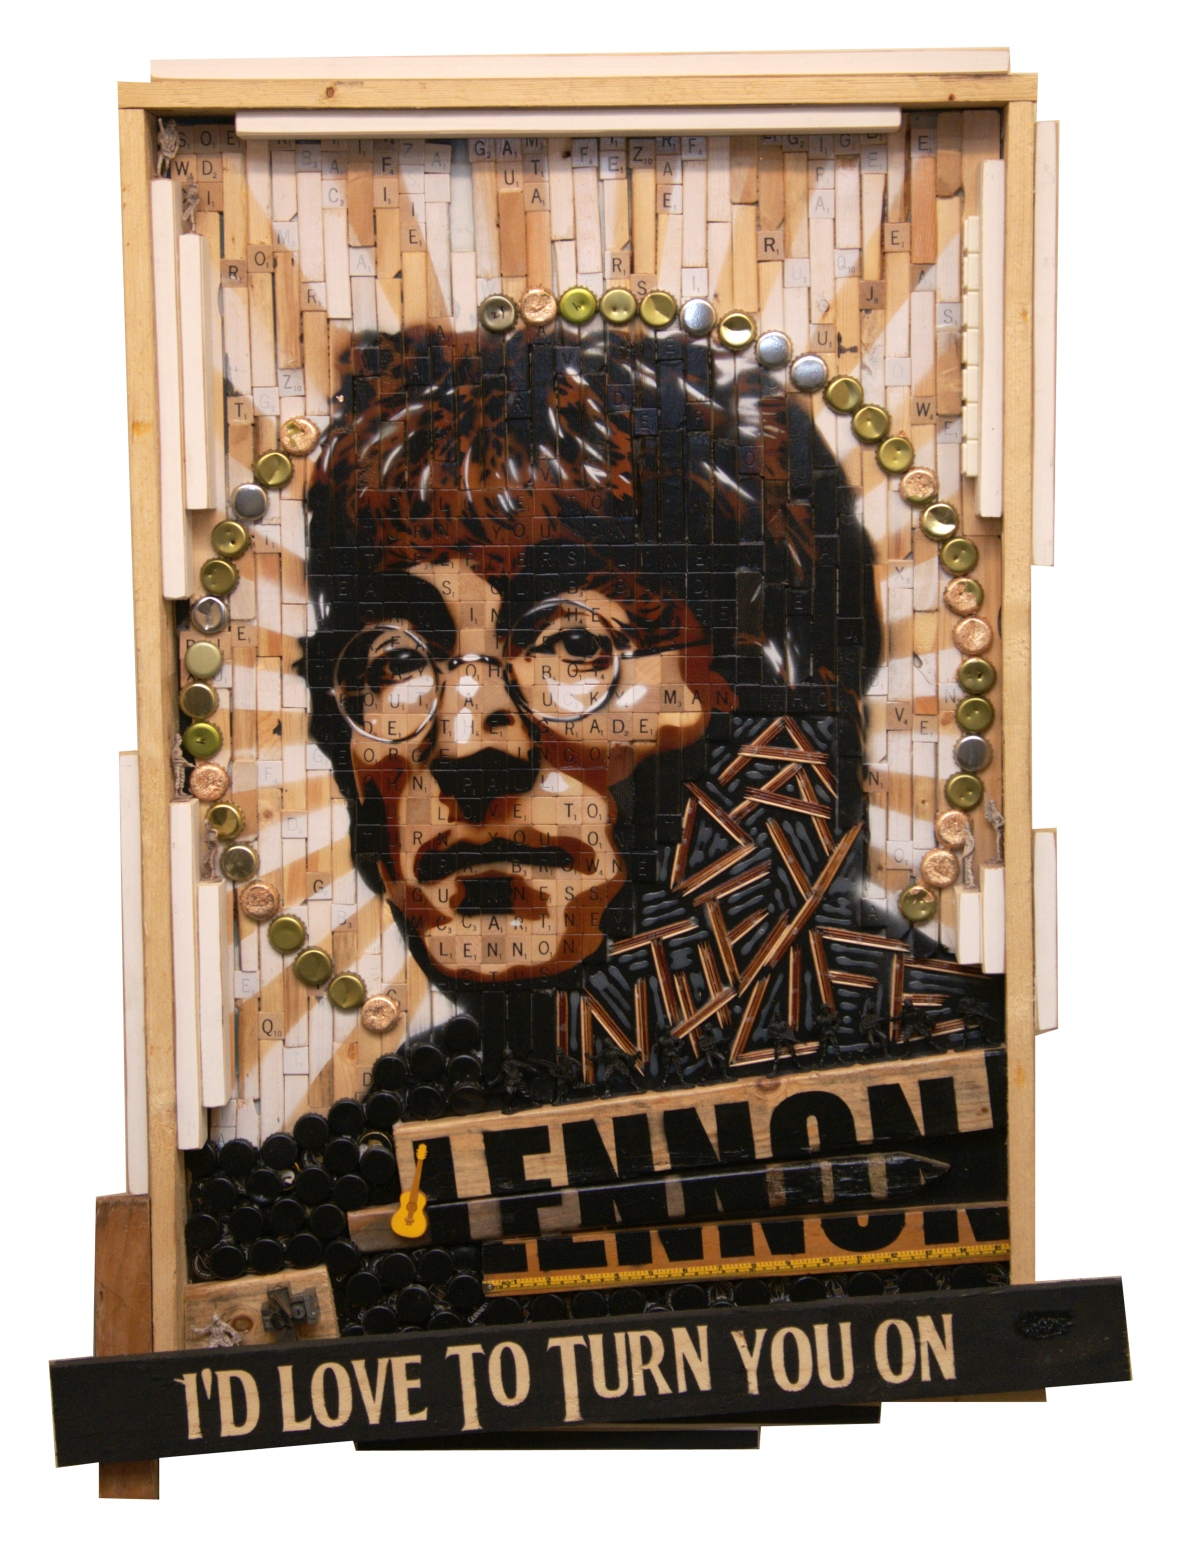 john lennon, art, i'd love to turn you on, mixed media, rich cihlar, e11even 2, cleveland, artists